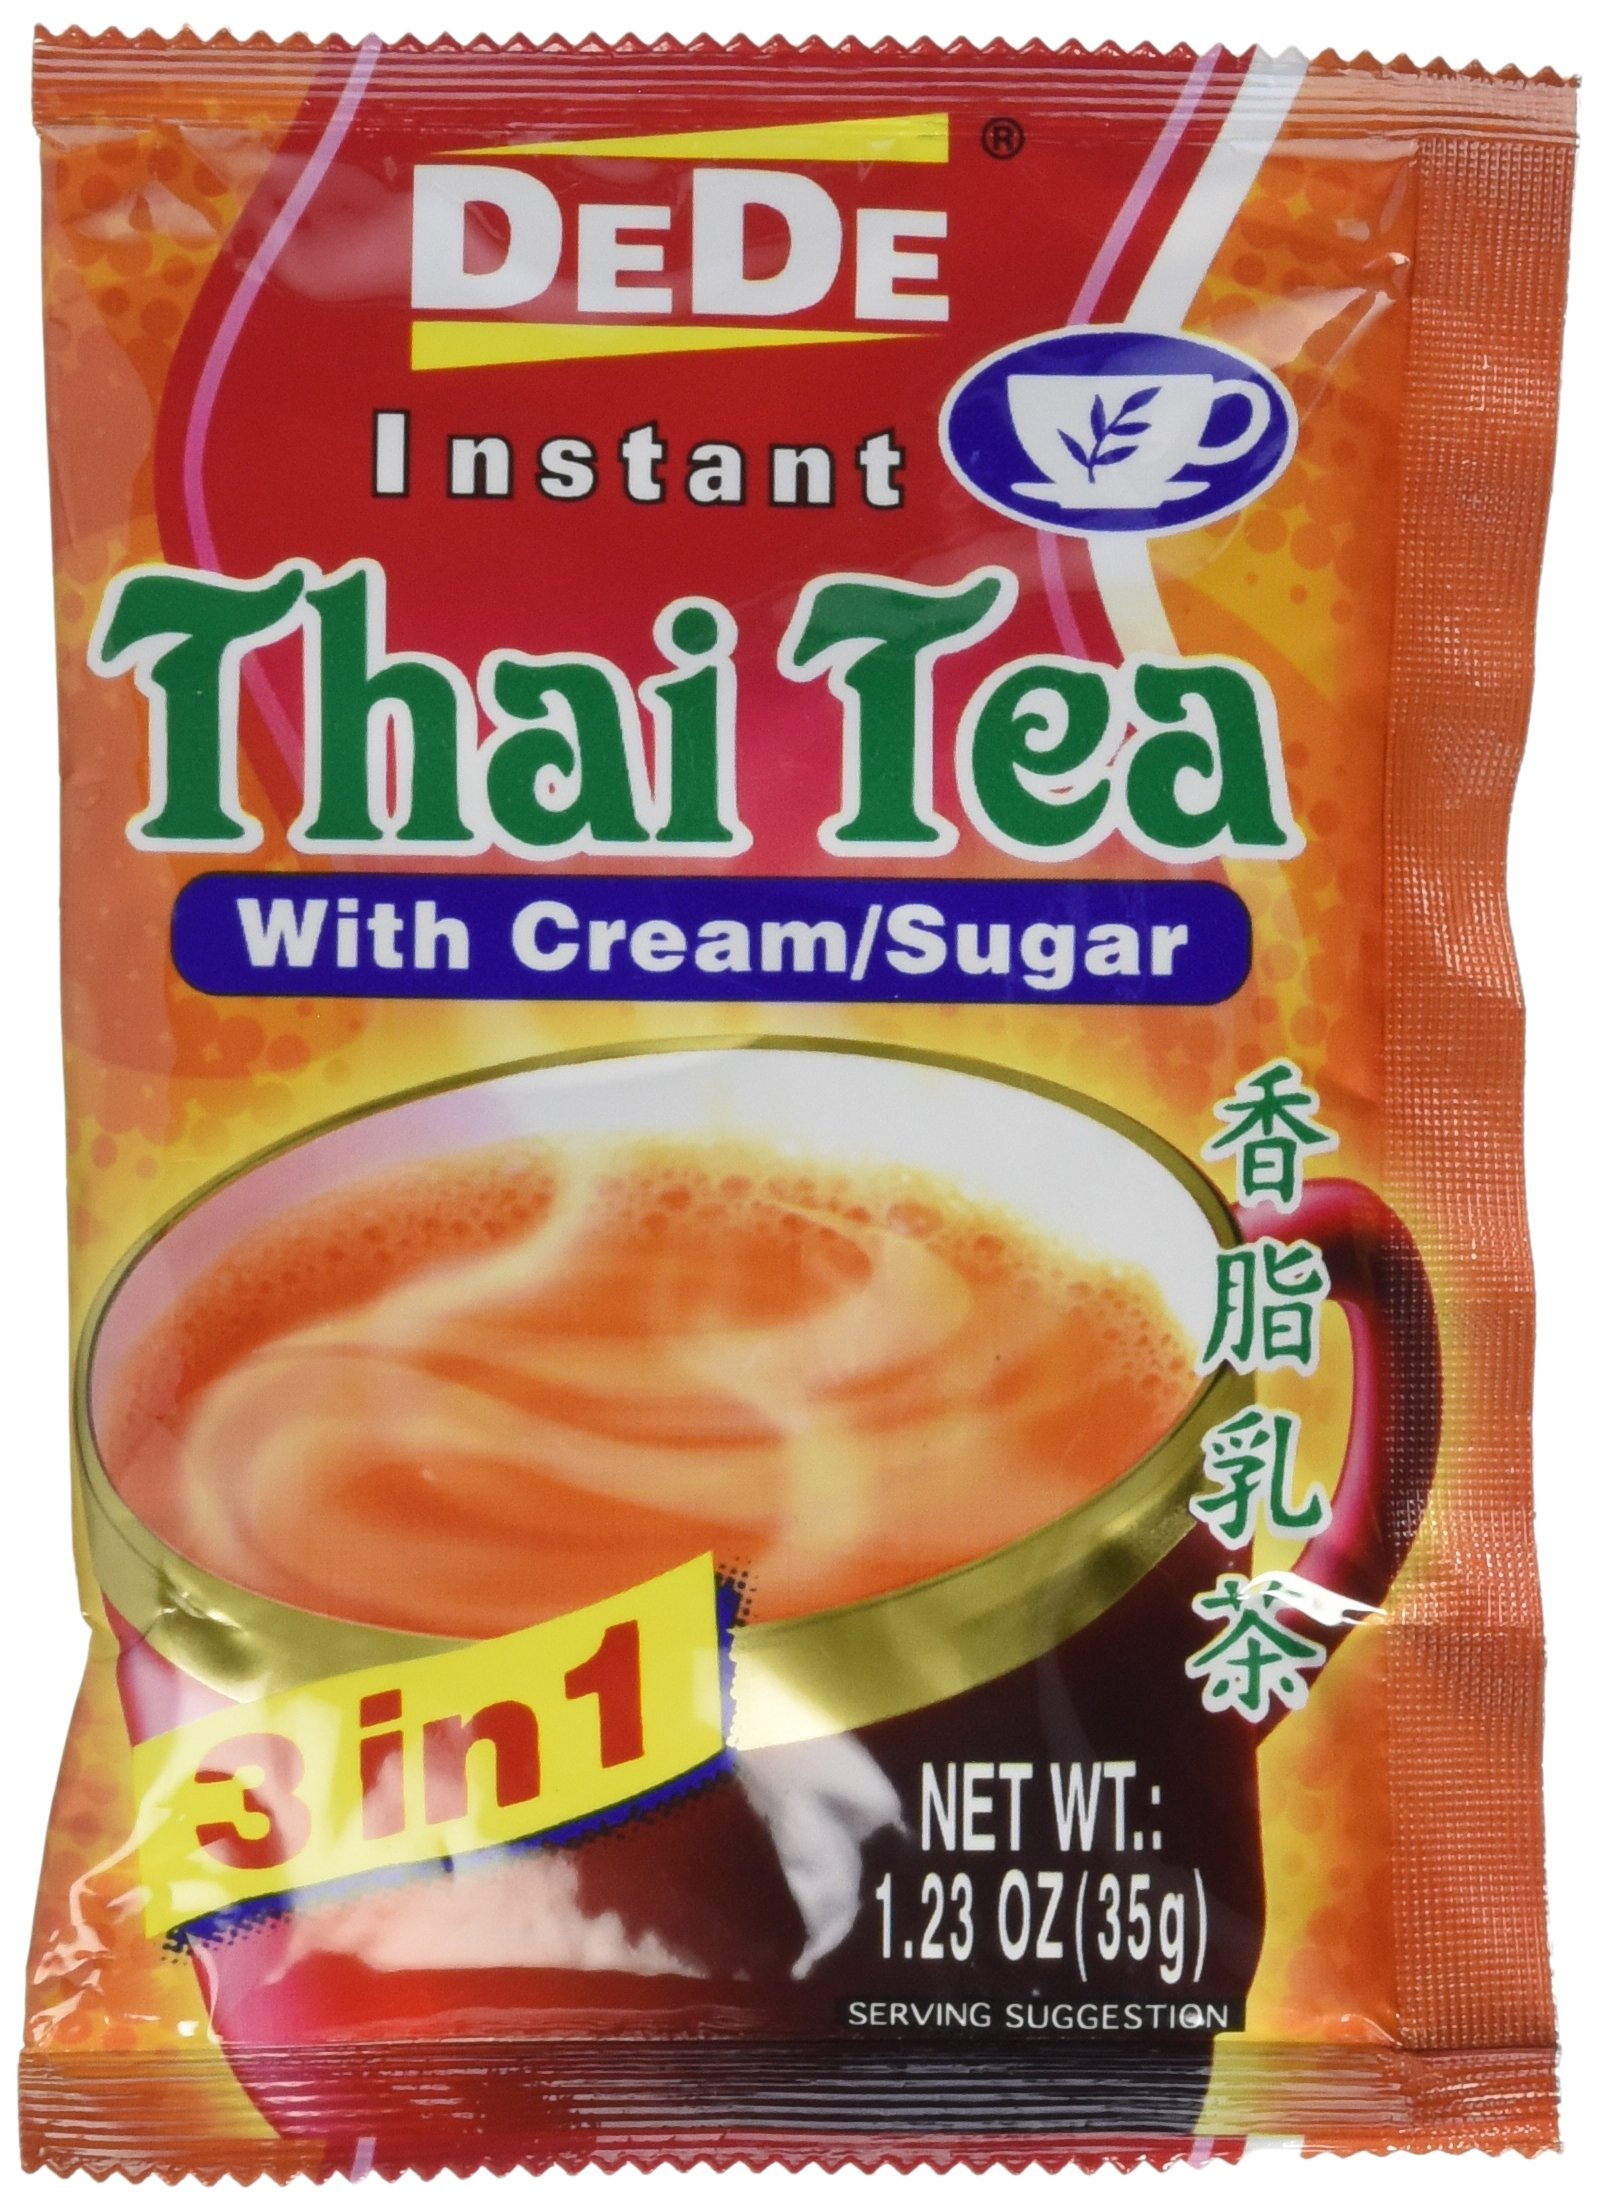 DEDE Instant Thai Tea Drink with Cream and Sugar - 12 Pockets by Pier Mall